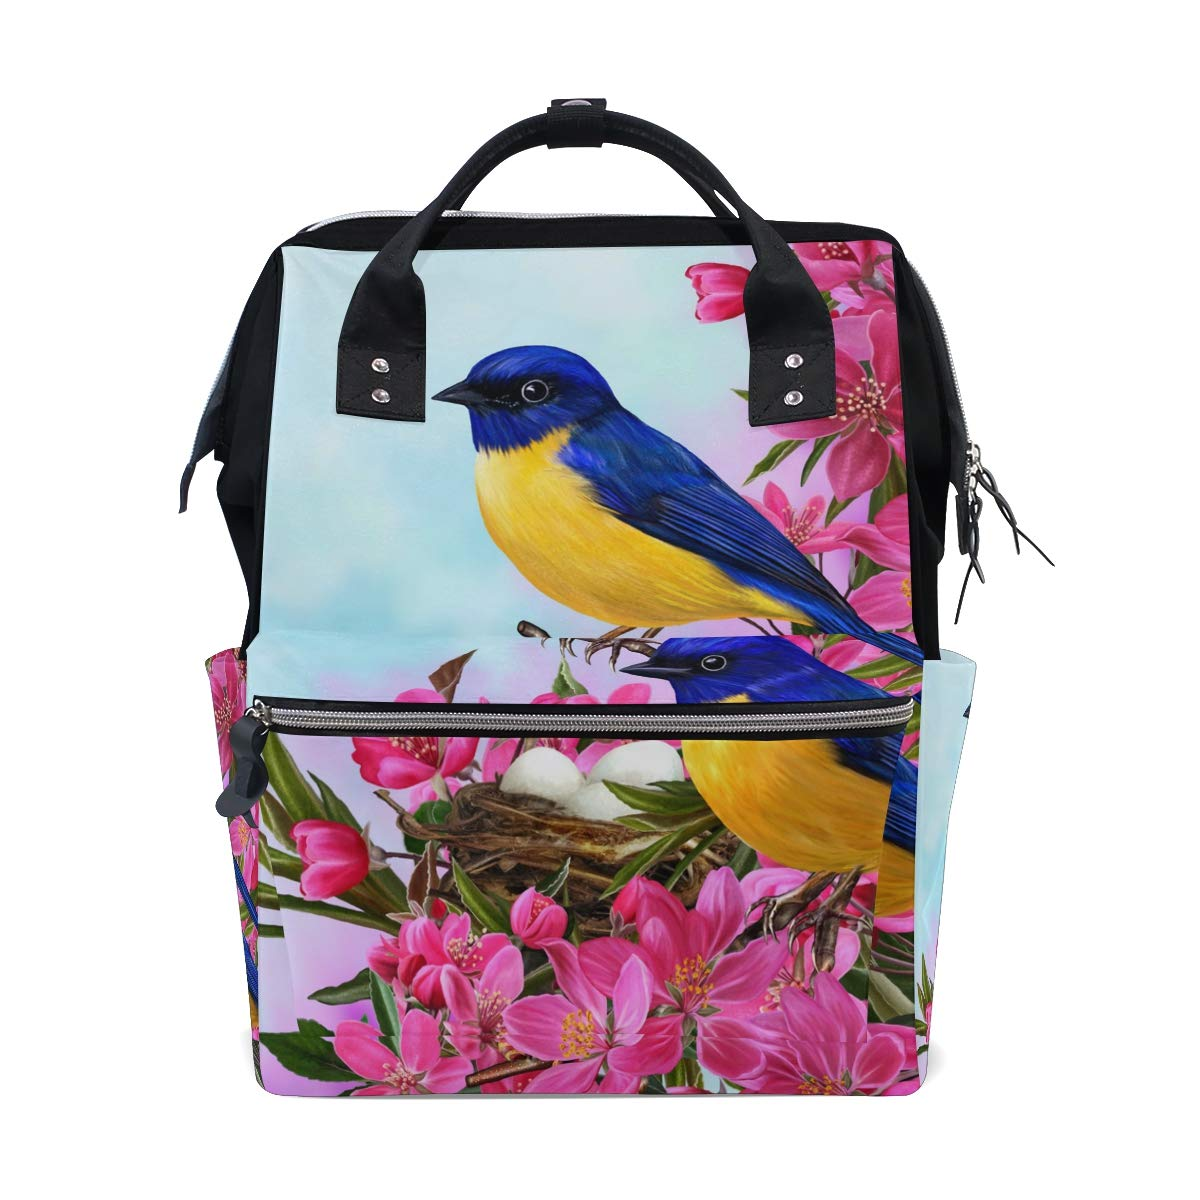 TropicalLife Bird Flower Diaper Backpack Large Capacity Baby Bags Multi-Function Zipper Casual Travel Backpacks for Mom Dad Unisex